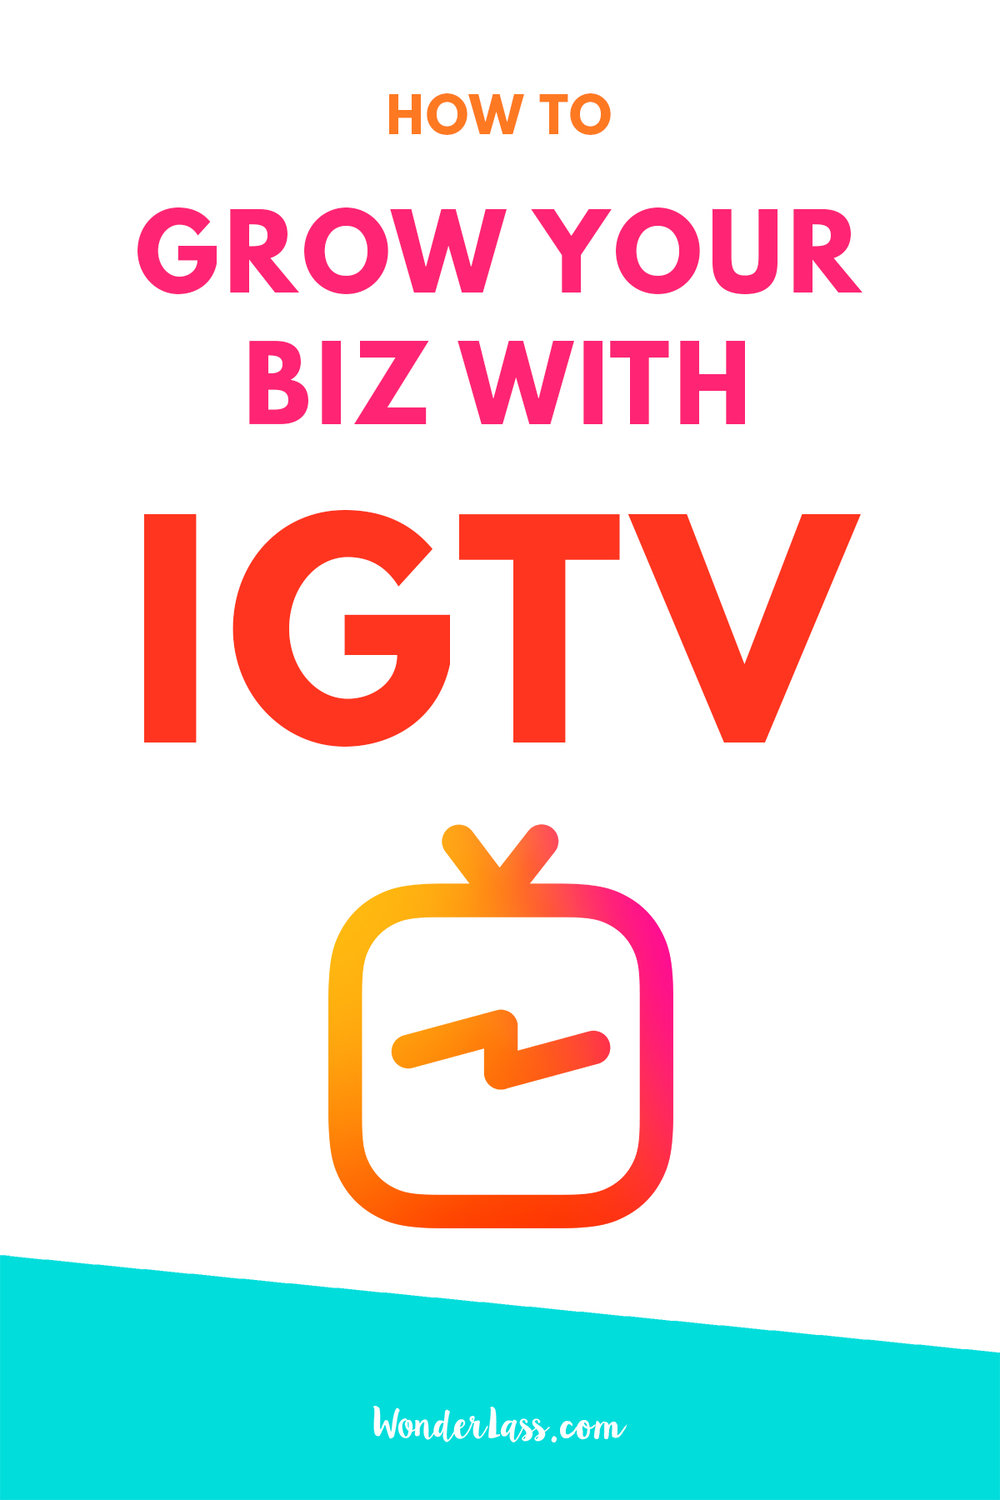 How to Grow Your Business With IGTV (Instagram TV) | Wonderlass  Ready to learn how you can leverage the new IGTV to do things like get more website traffic, grow your audience, make more sales and stand out online?  Then check out this blog post + video!  #IGTV #InstaTV #InstagramTV #passiveincome #makepassiveincome #videomarketing #growyouronlinebusiness #instagrammarketing #howtomakepassiveincome #howtouseIGTV